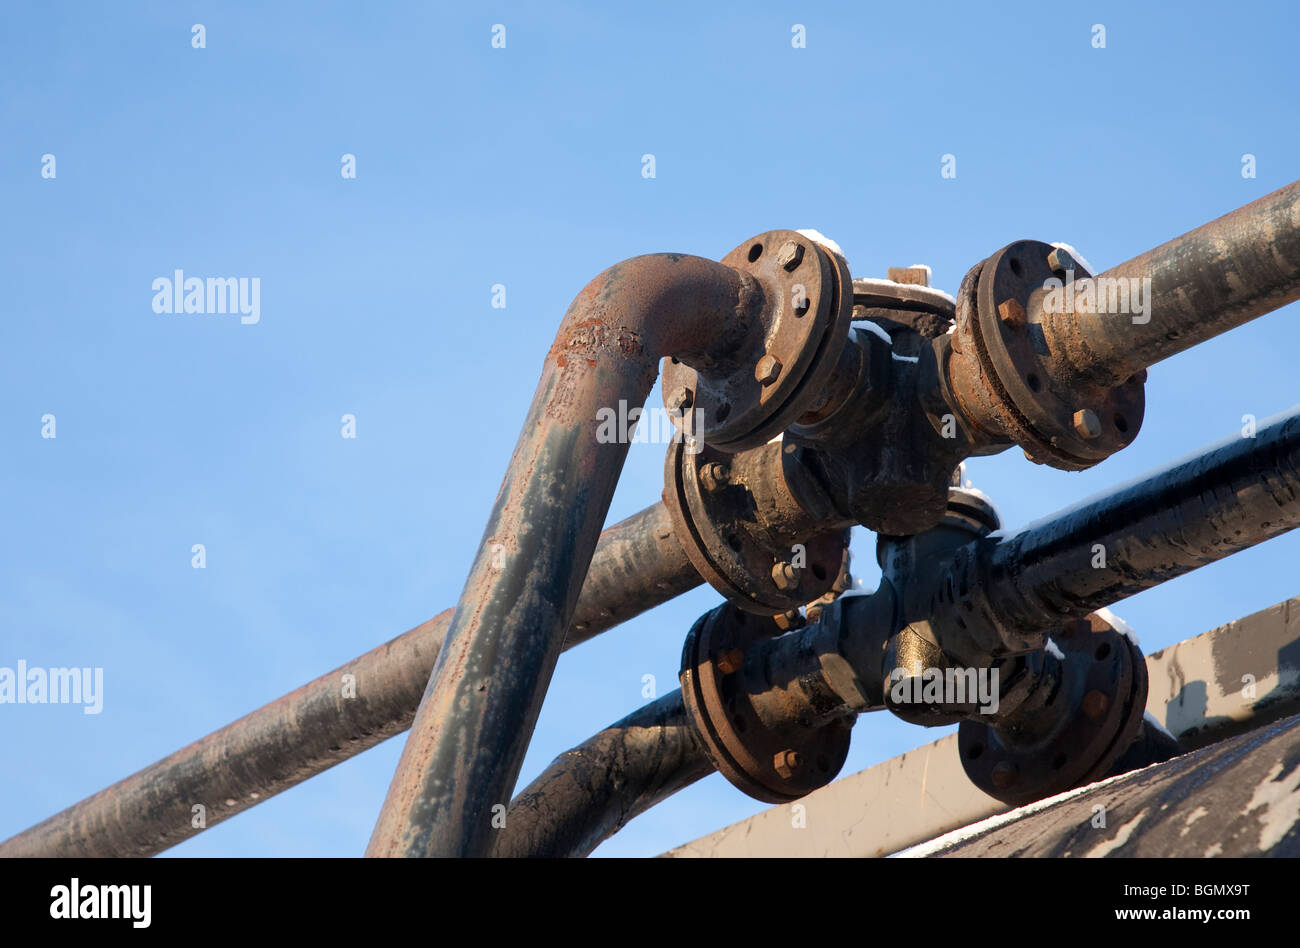 Pipe joint against blue sky - Stock Image